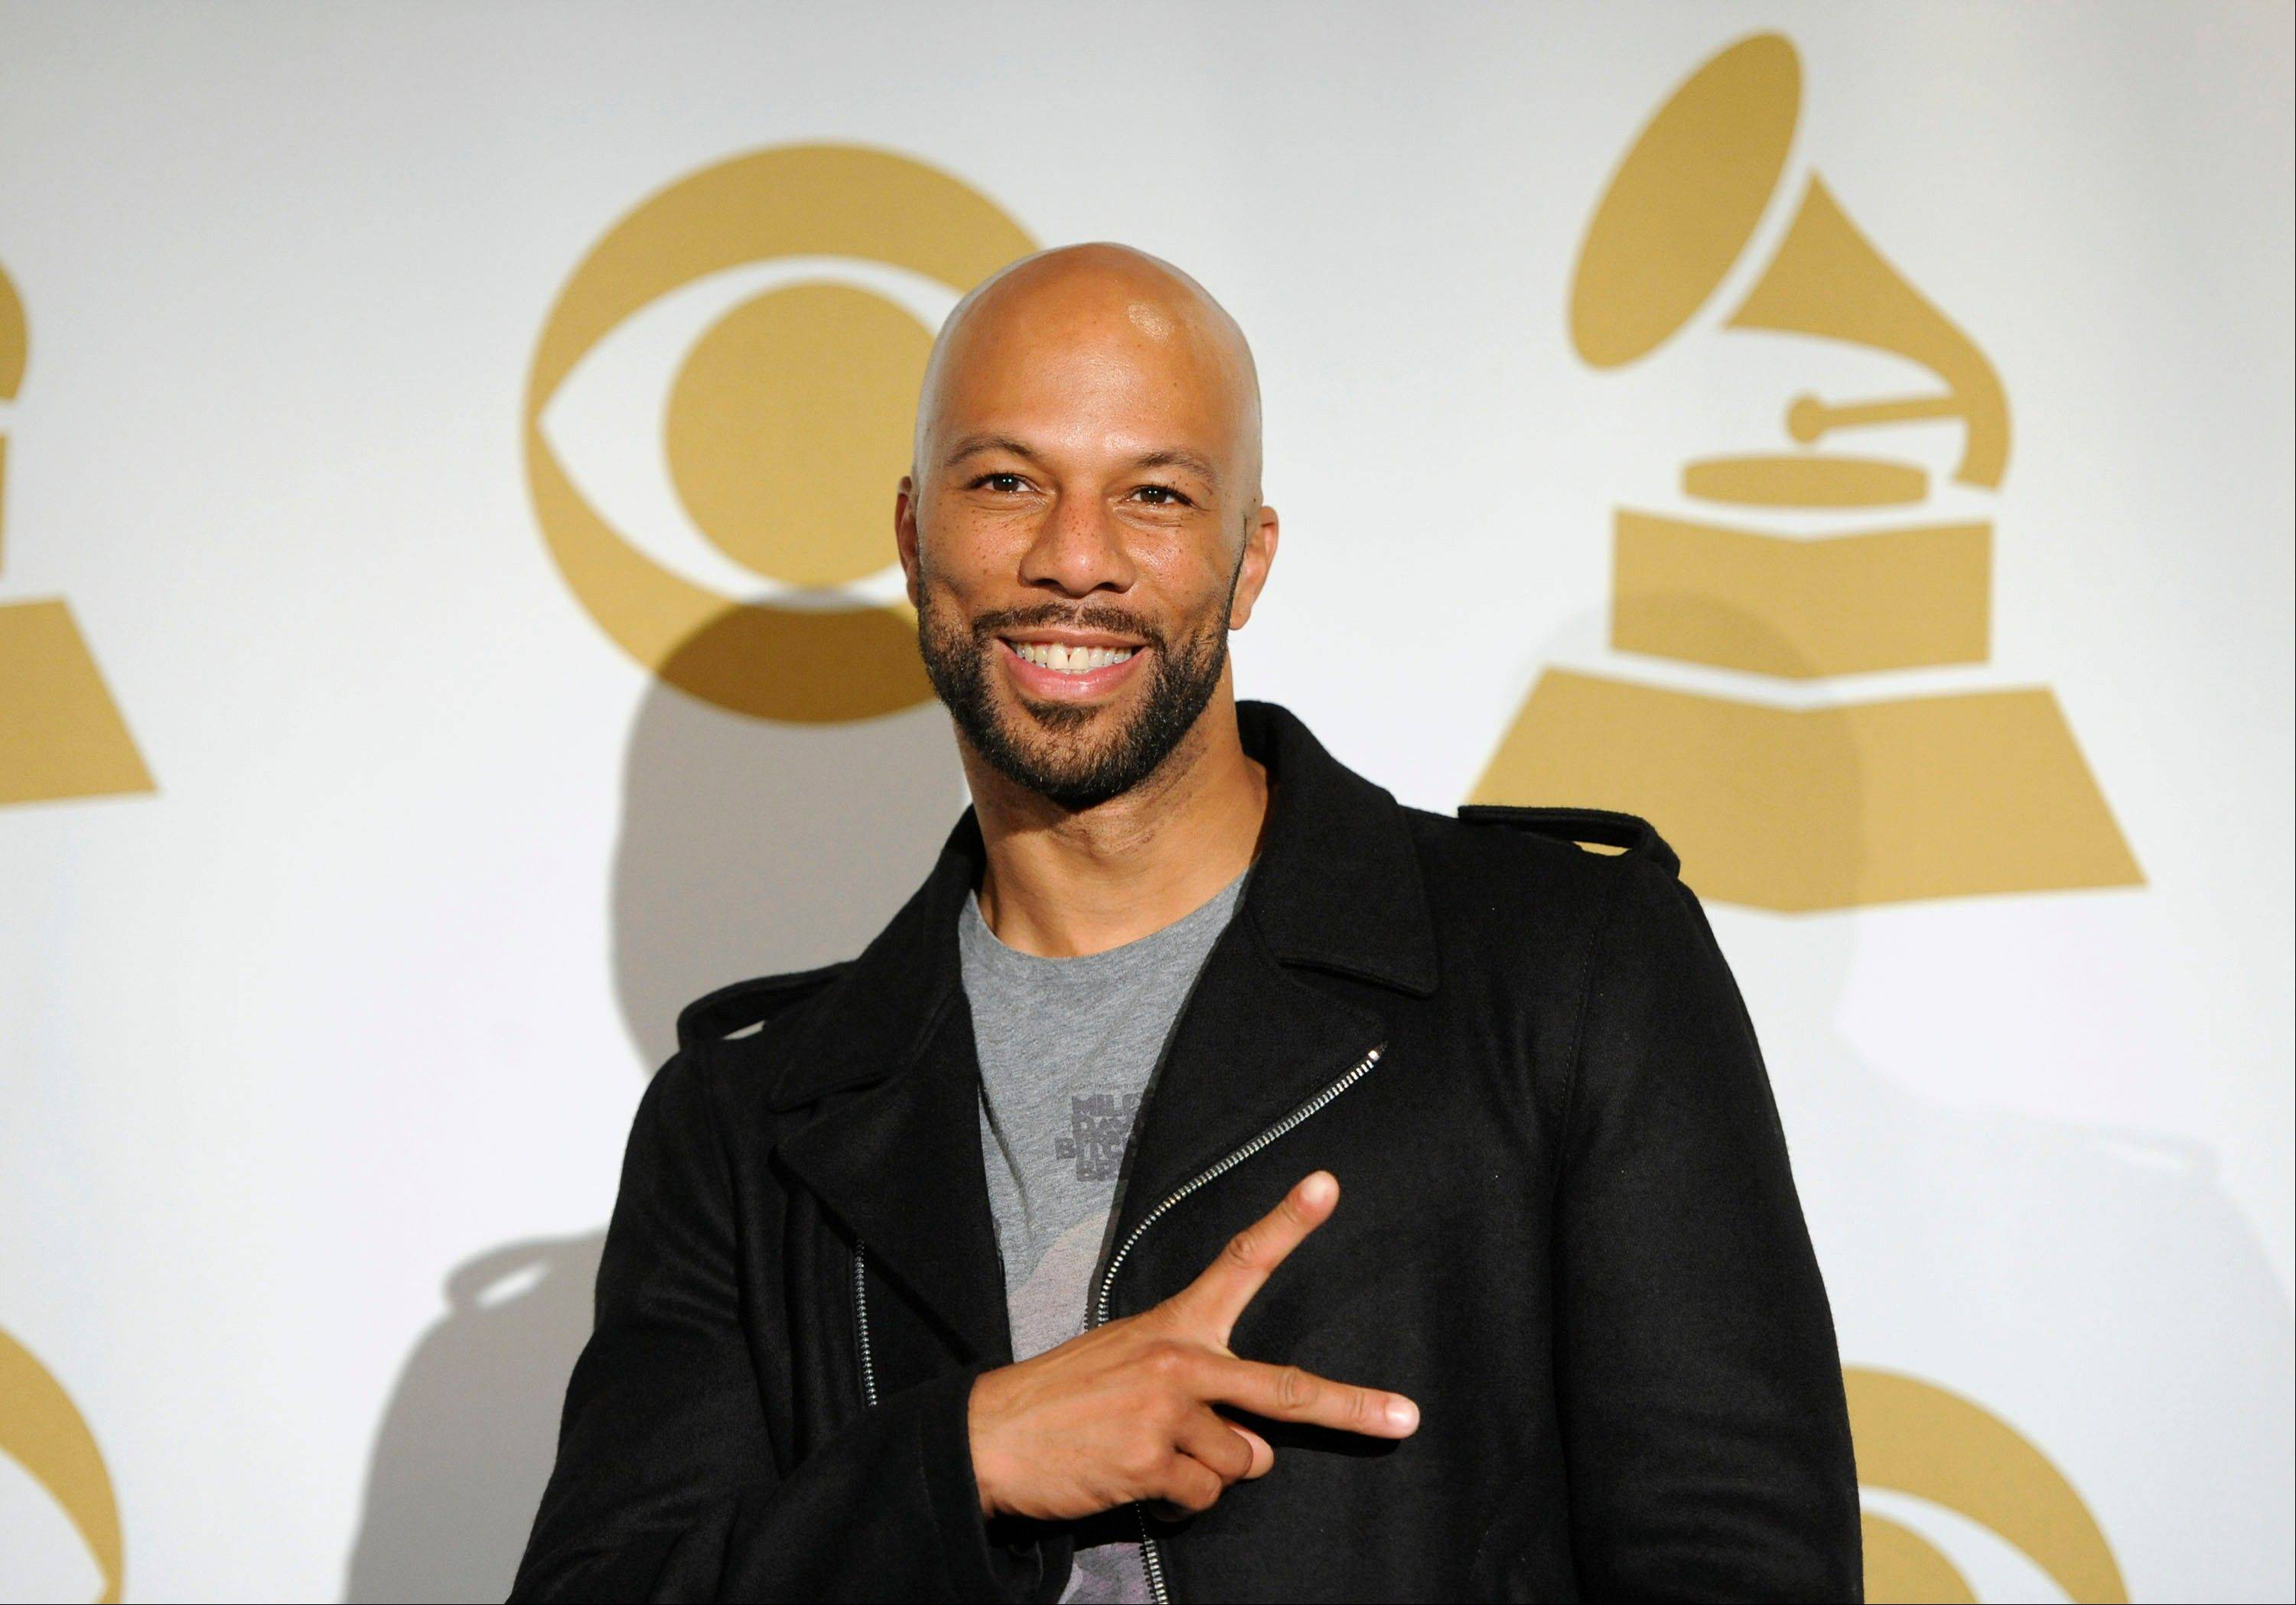 Common is seen backstage Wednesday at the Grammy Nominations Concert in Los Angeles.